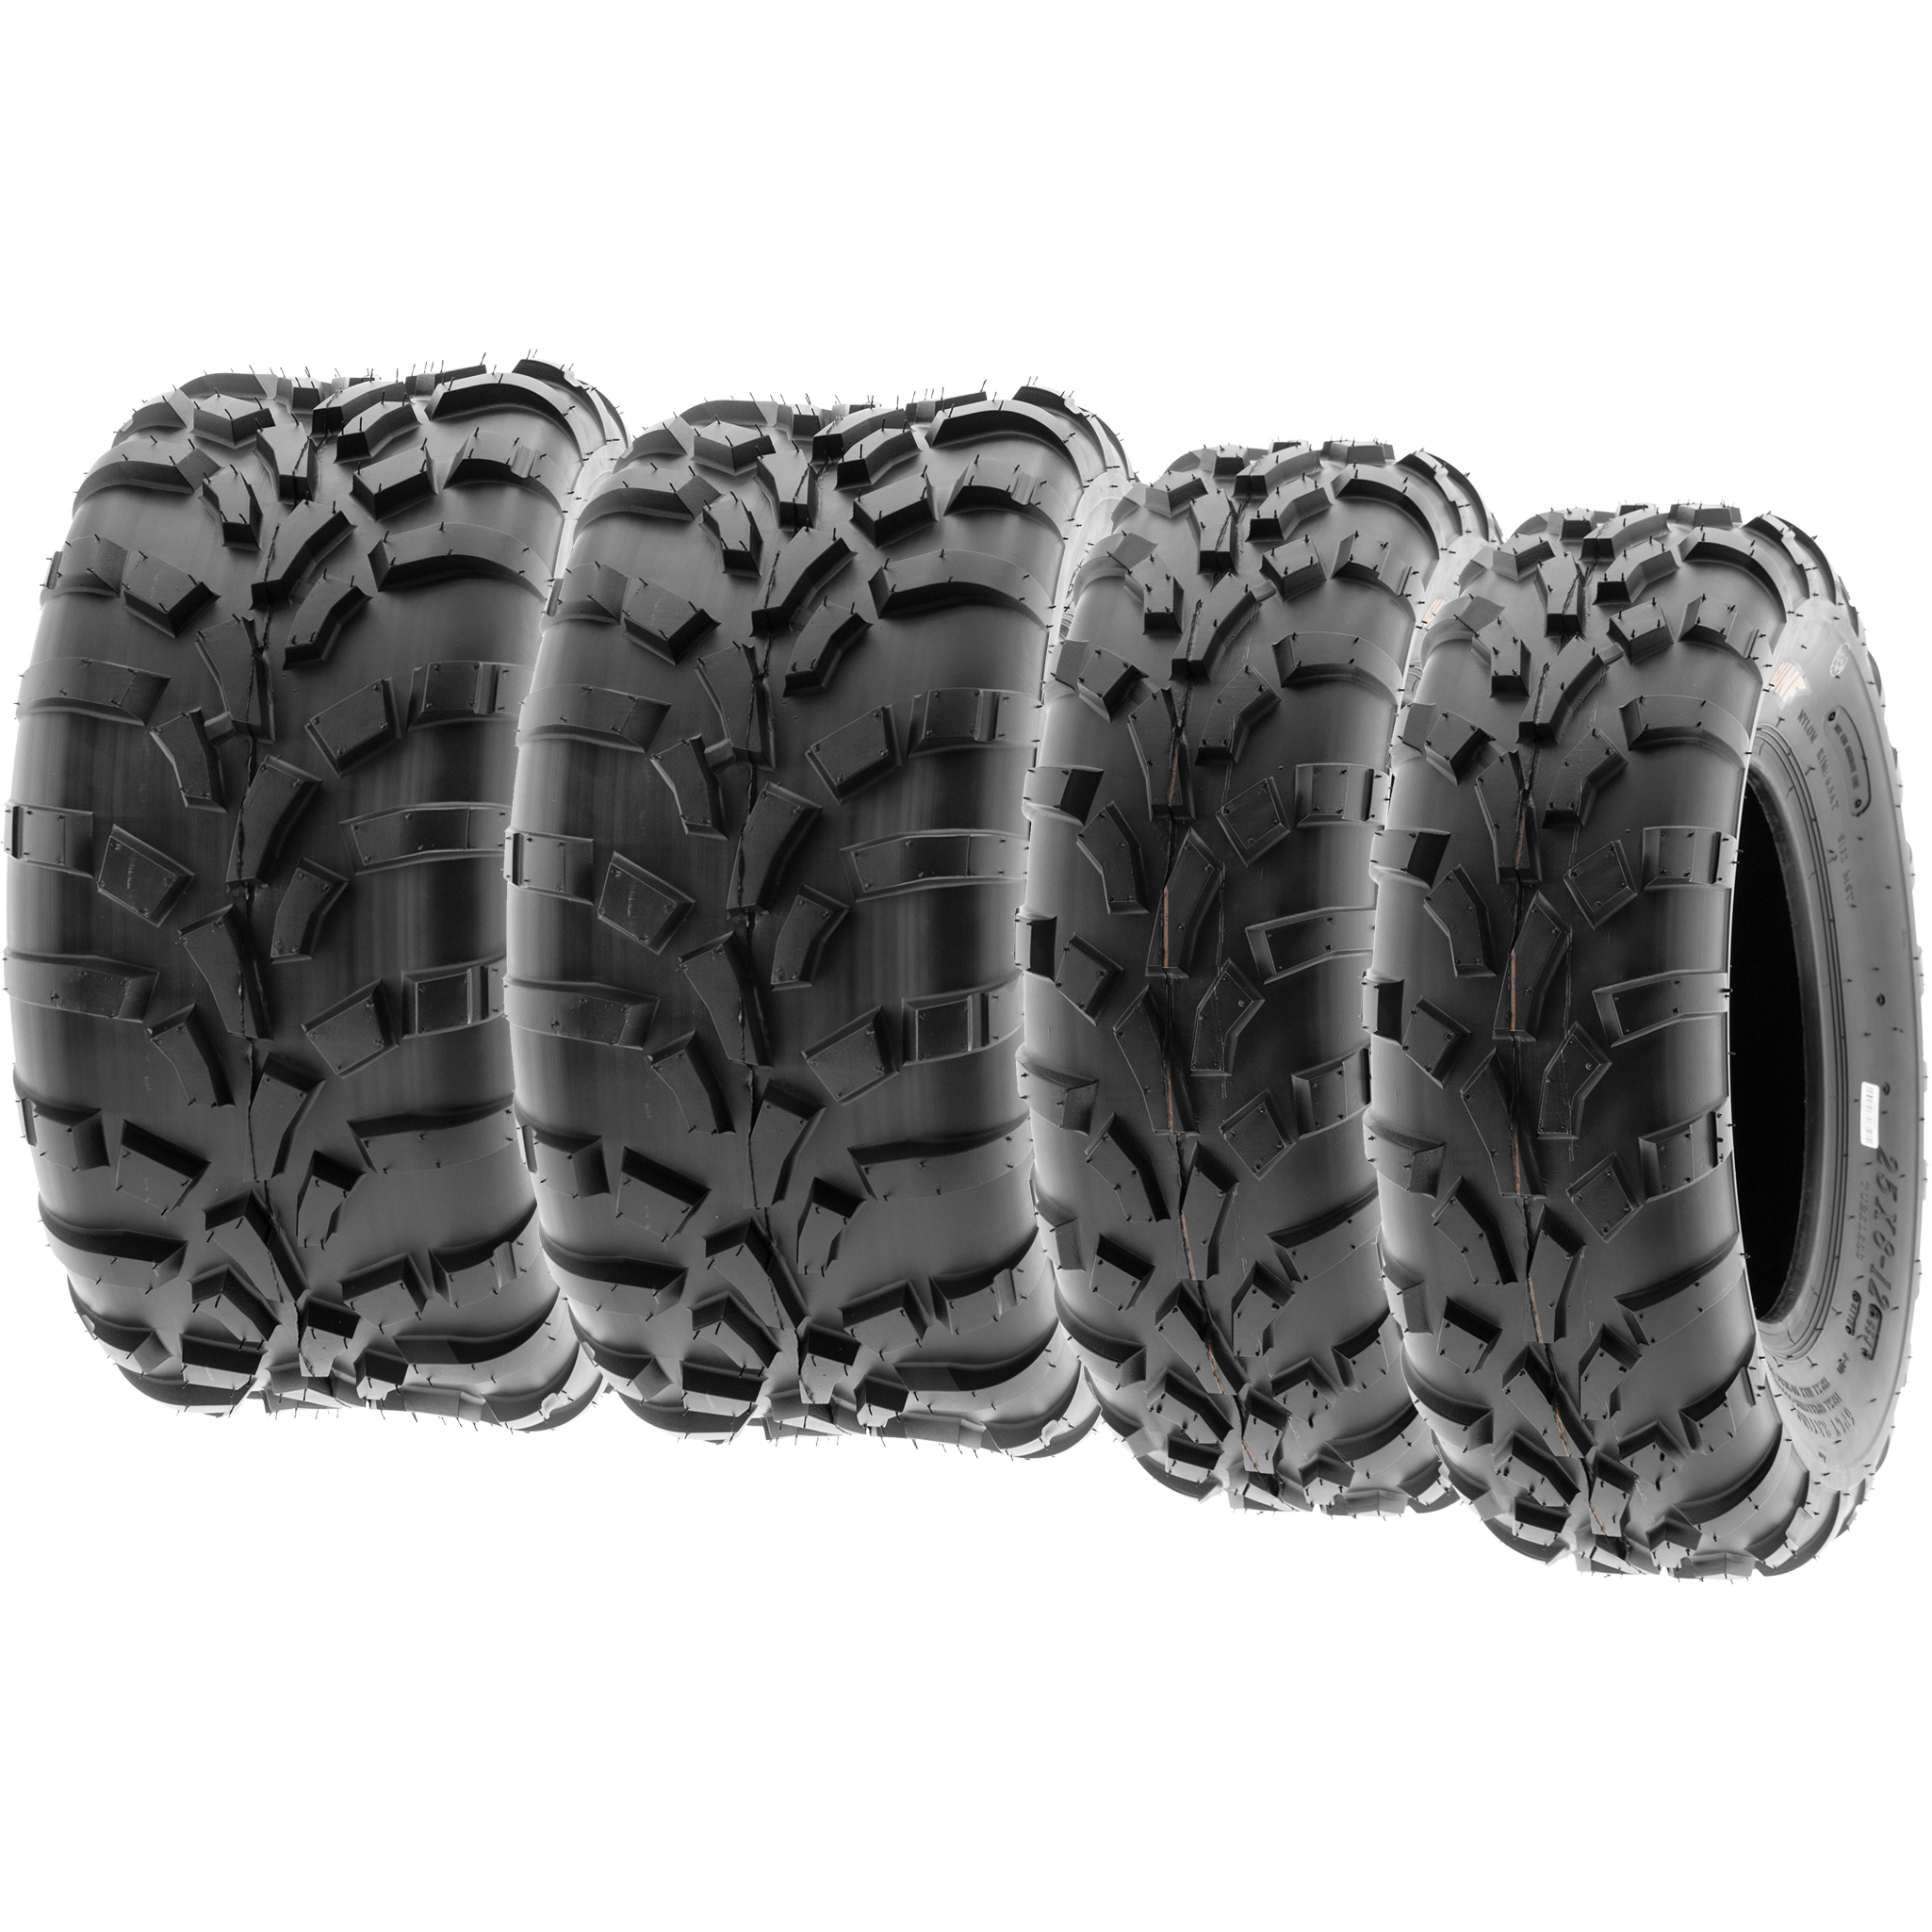 SunF 22x7-12 ATV UTV Tire 22x7x12  All Trail Replacement 6 Ply A033  POWER I